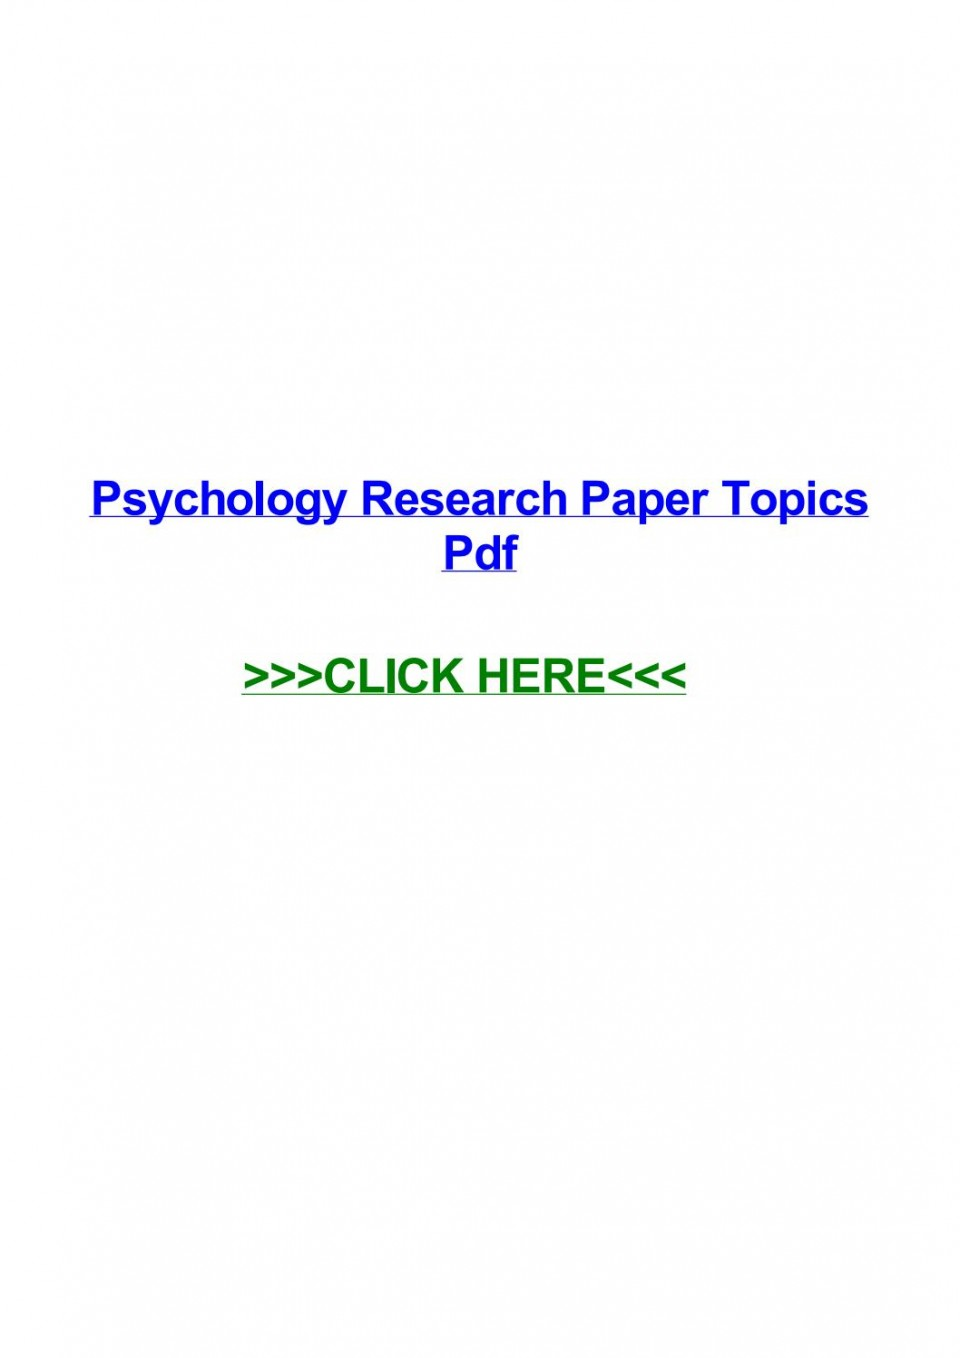 015 Psychology Research Paper Topics Pdf Page 1 Best 960